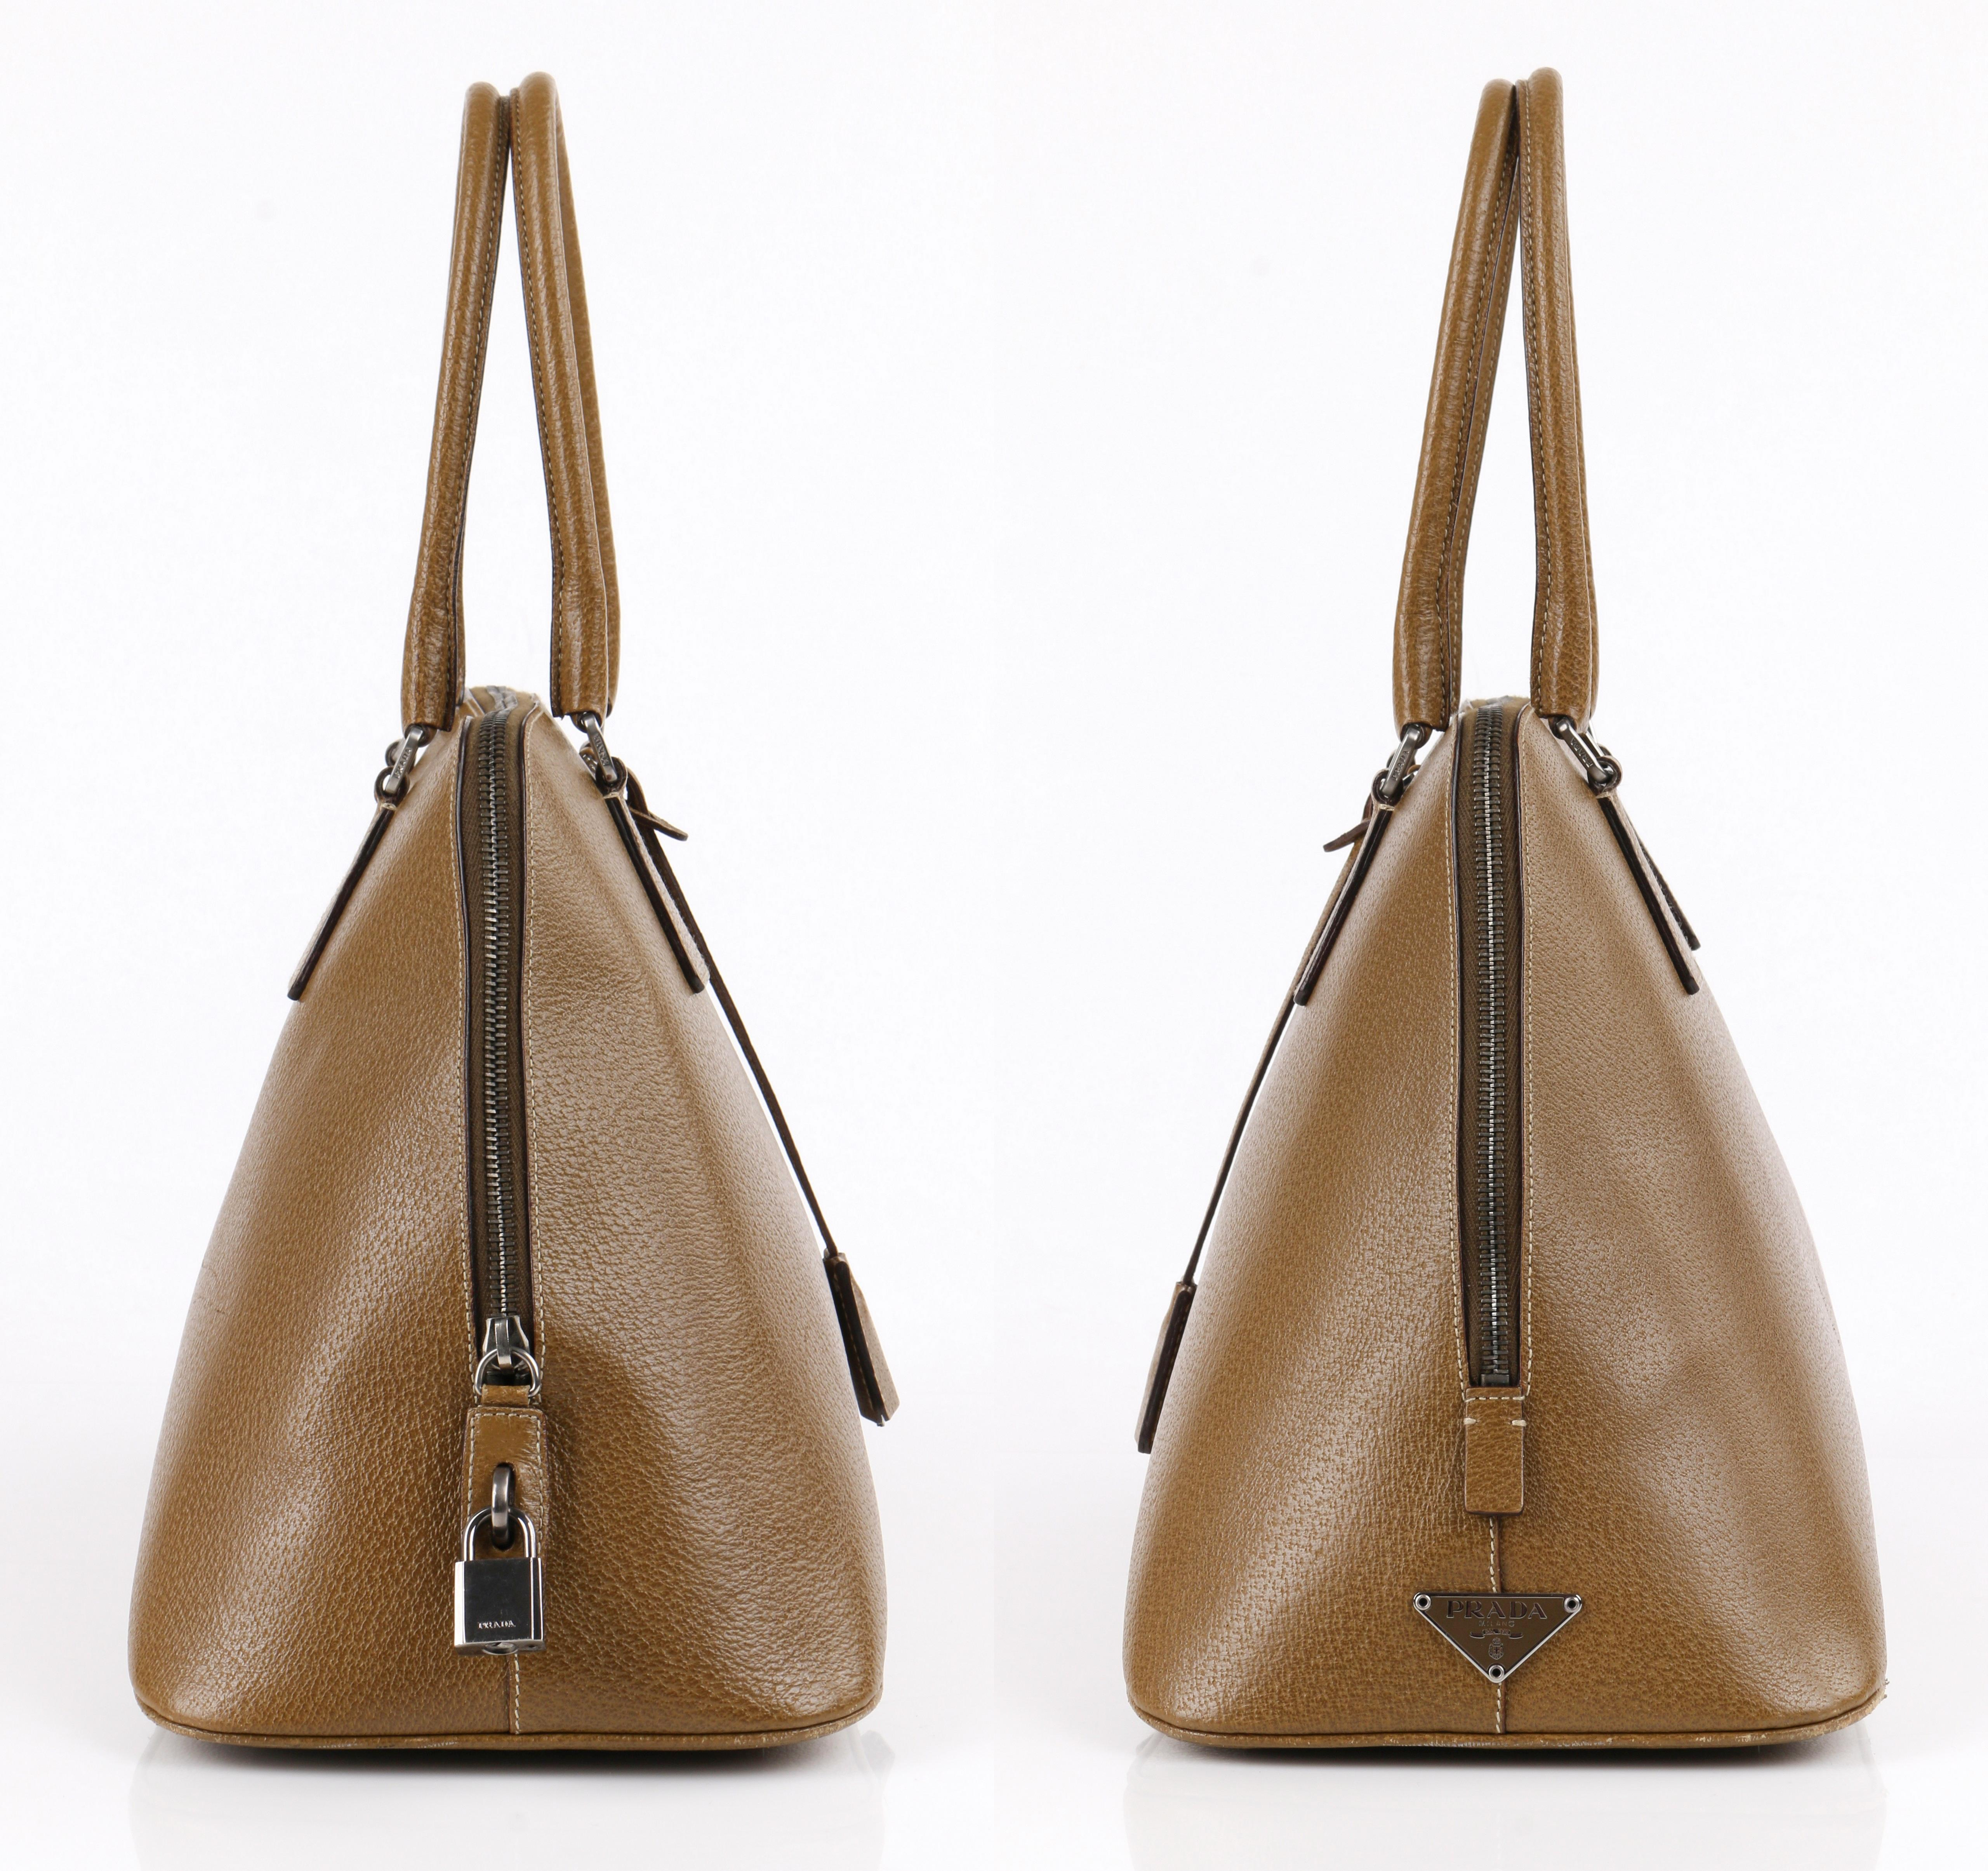 9f3cae21a9da ... discount code for prada olive brown leather structured top handle  trapezoid satchel purse in excellent condition